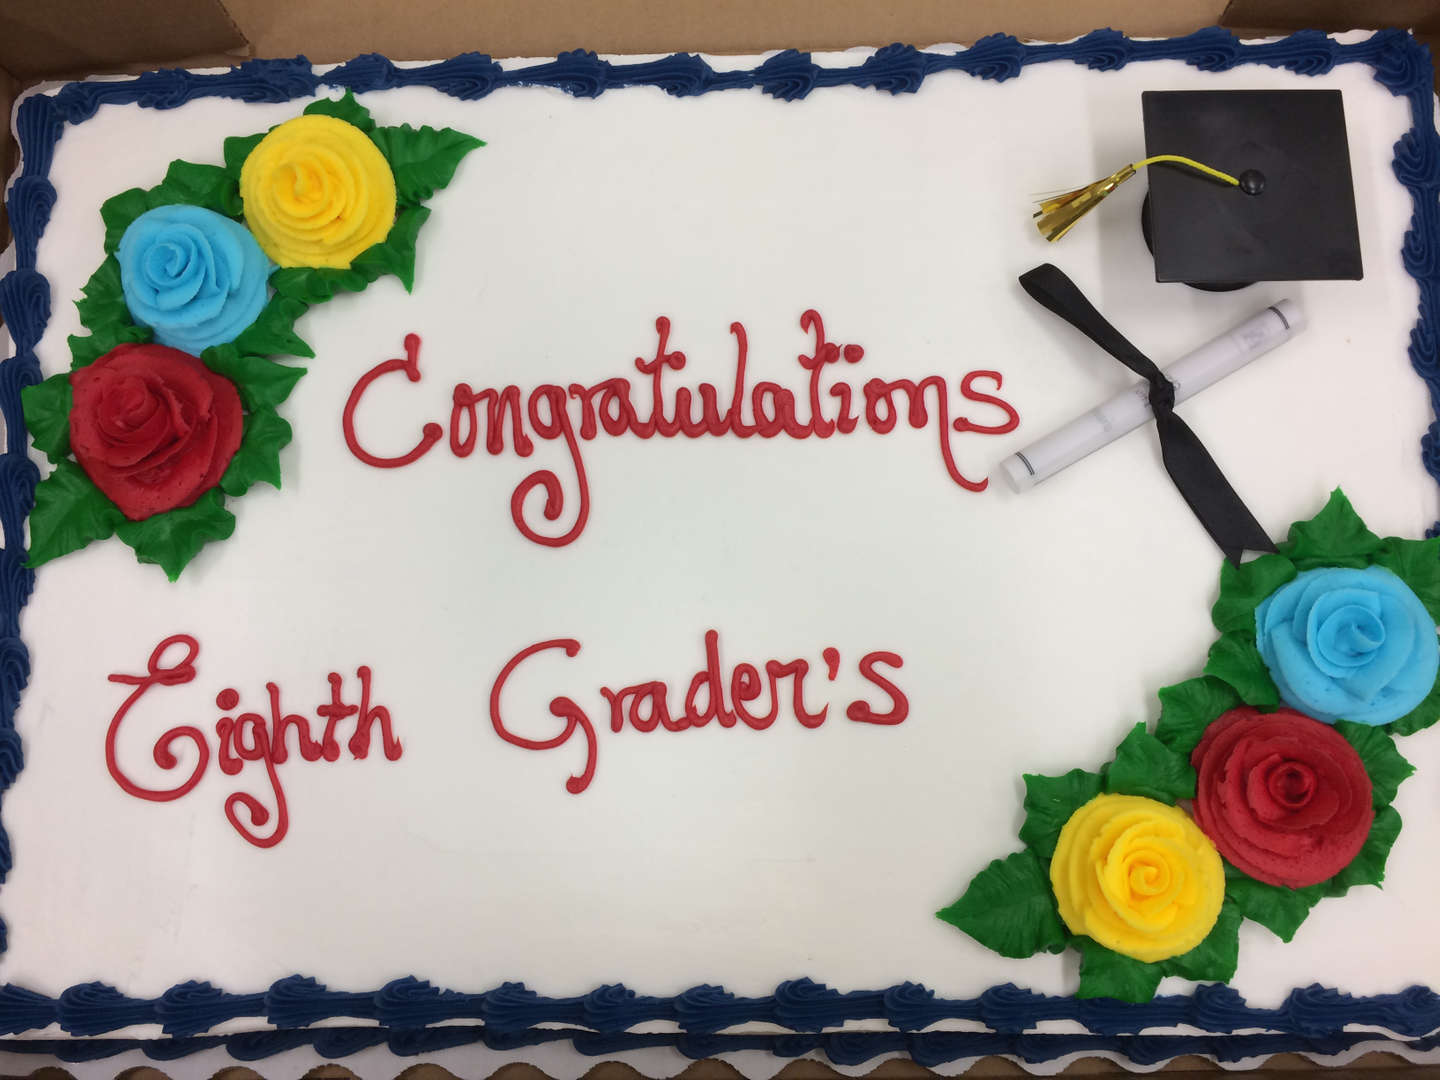 Cake with inscription Congratulations Eighth Graders